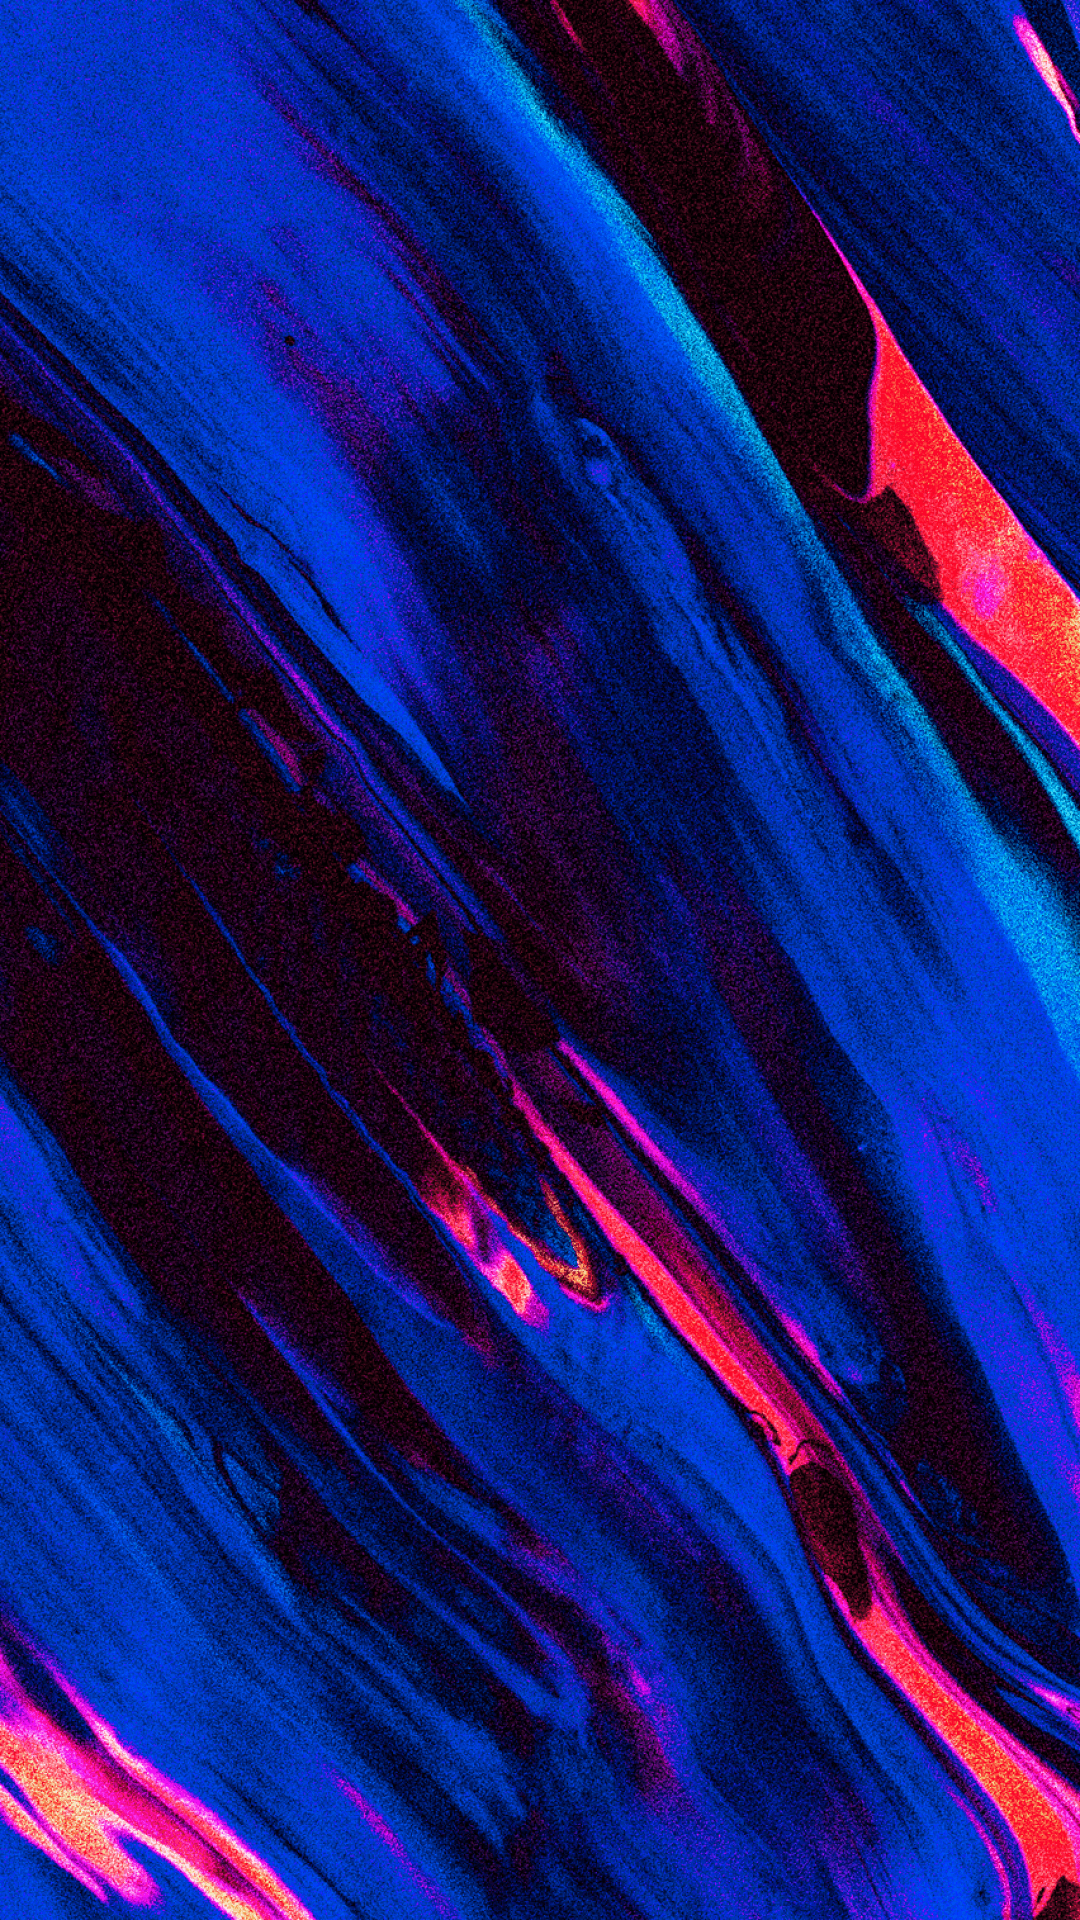 X Iphone Abstract Wallpapers Top Free X Iphone Abstract Backgrounds Wallpaperaccess